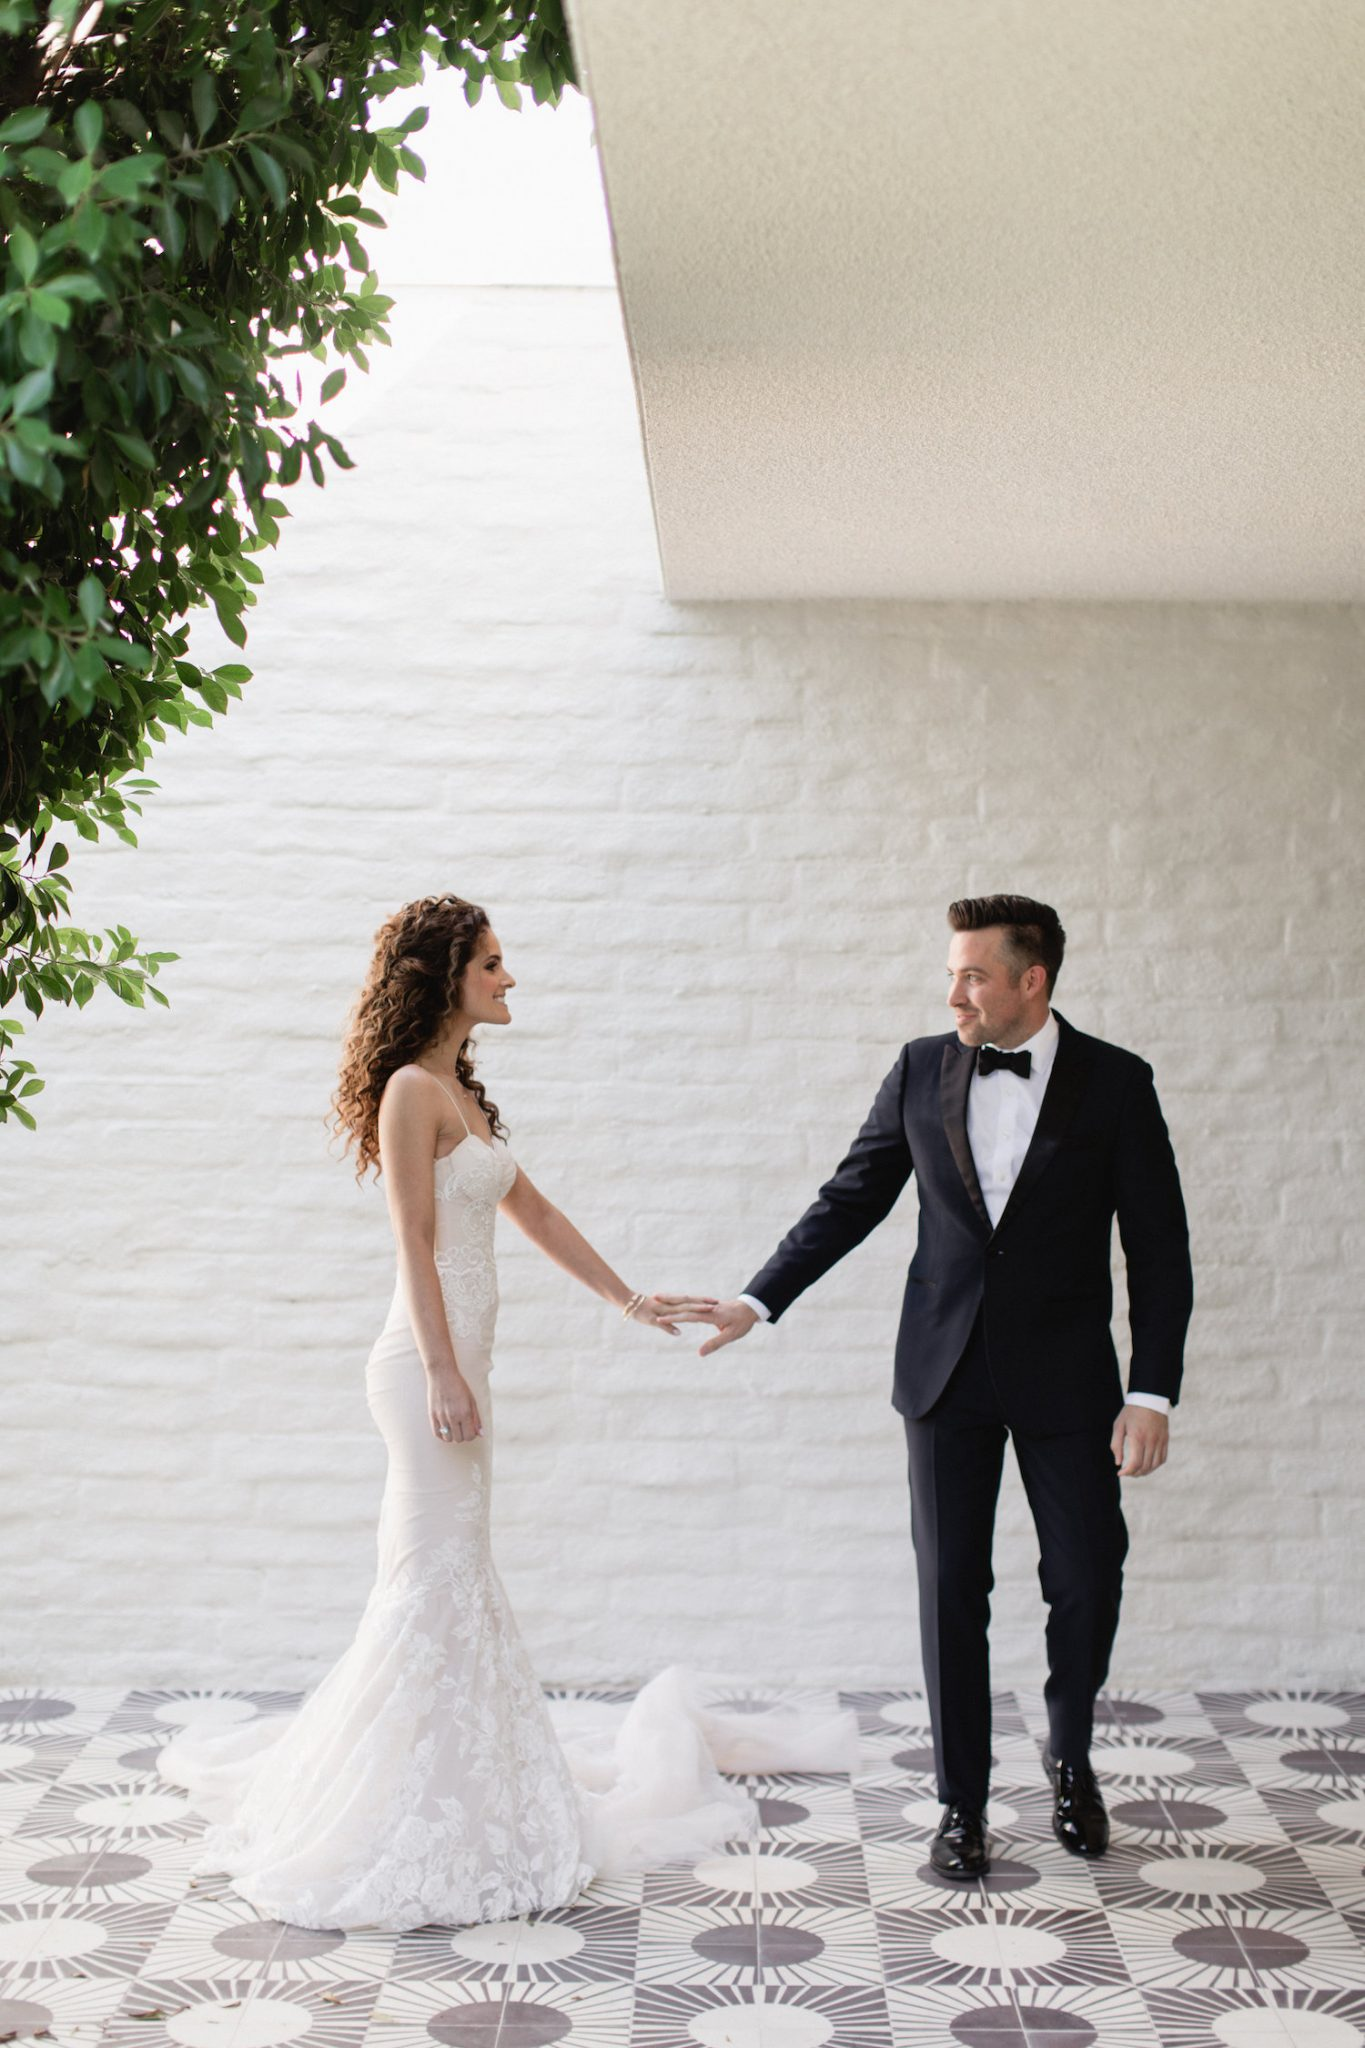 Top 5 tips and ideas to help you get all your wedding photos